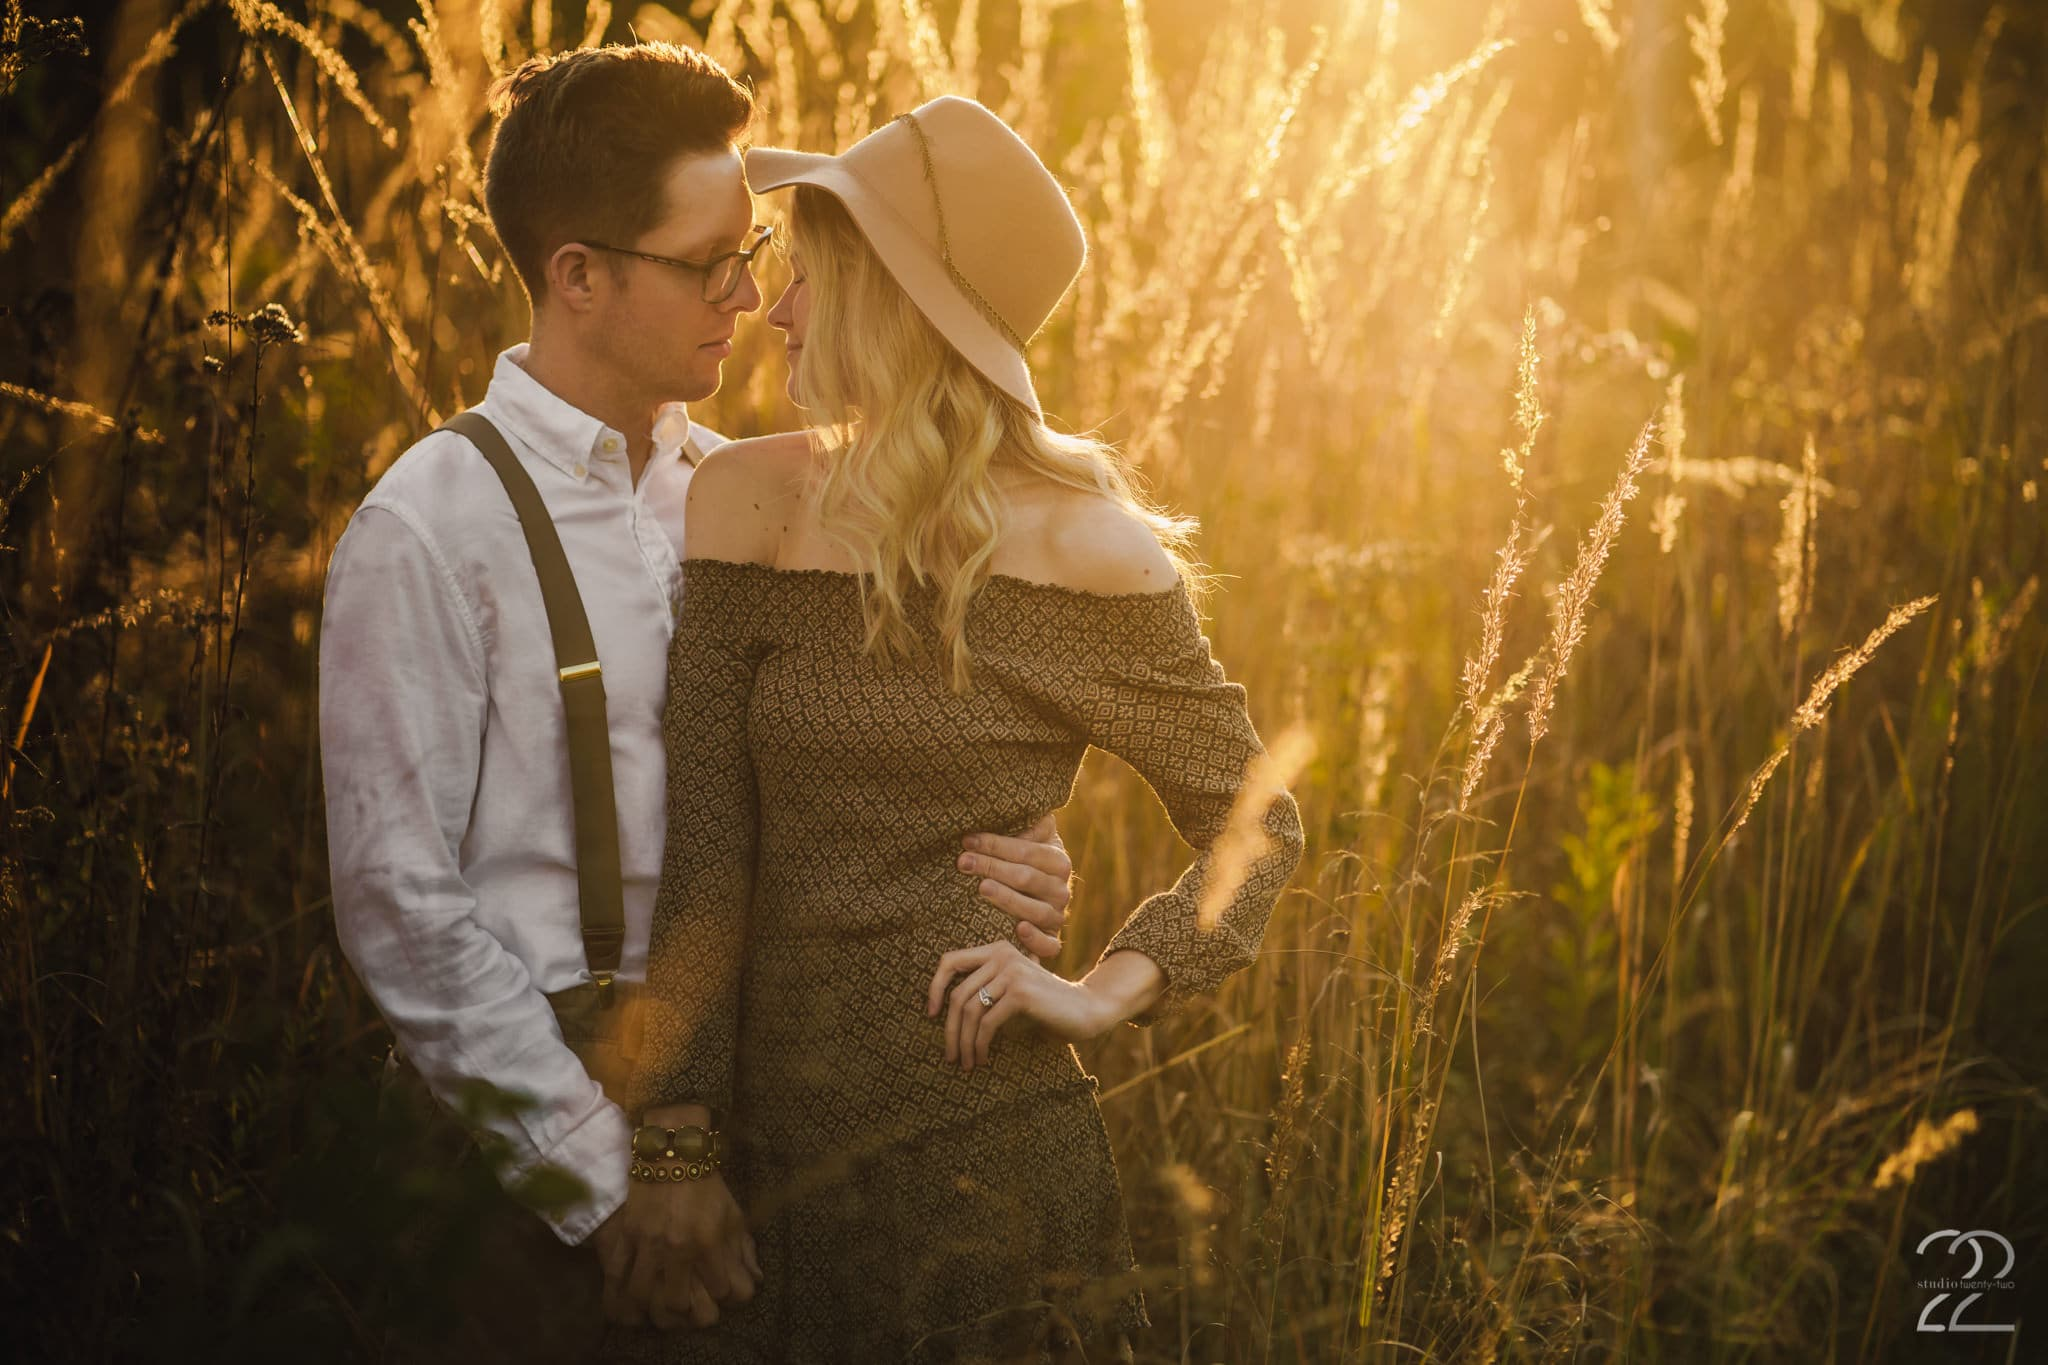 Studio 22 Photography - Wegerzyn Garden Engagement Photos